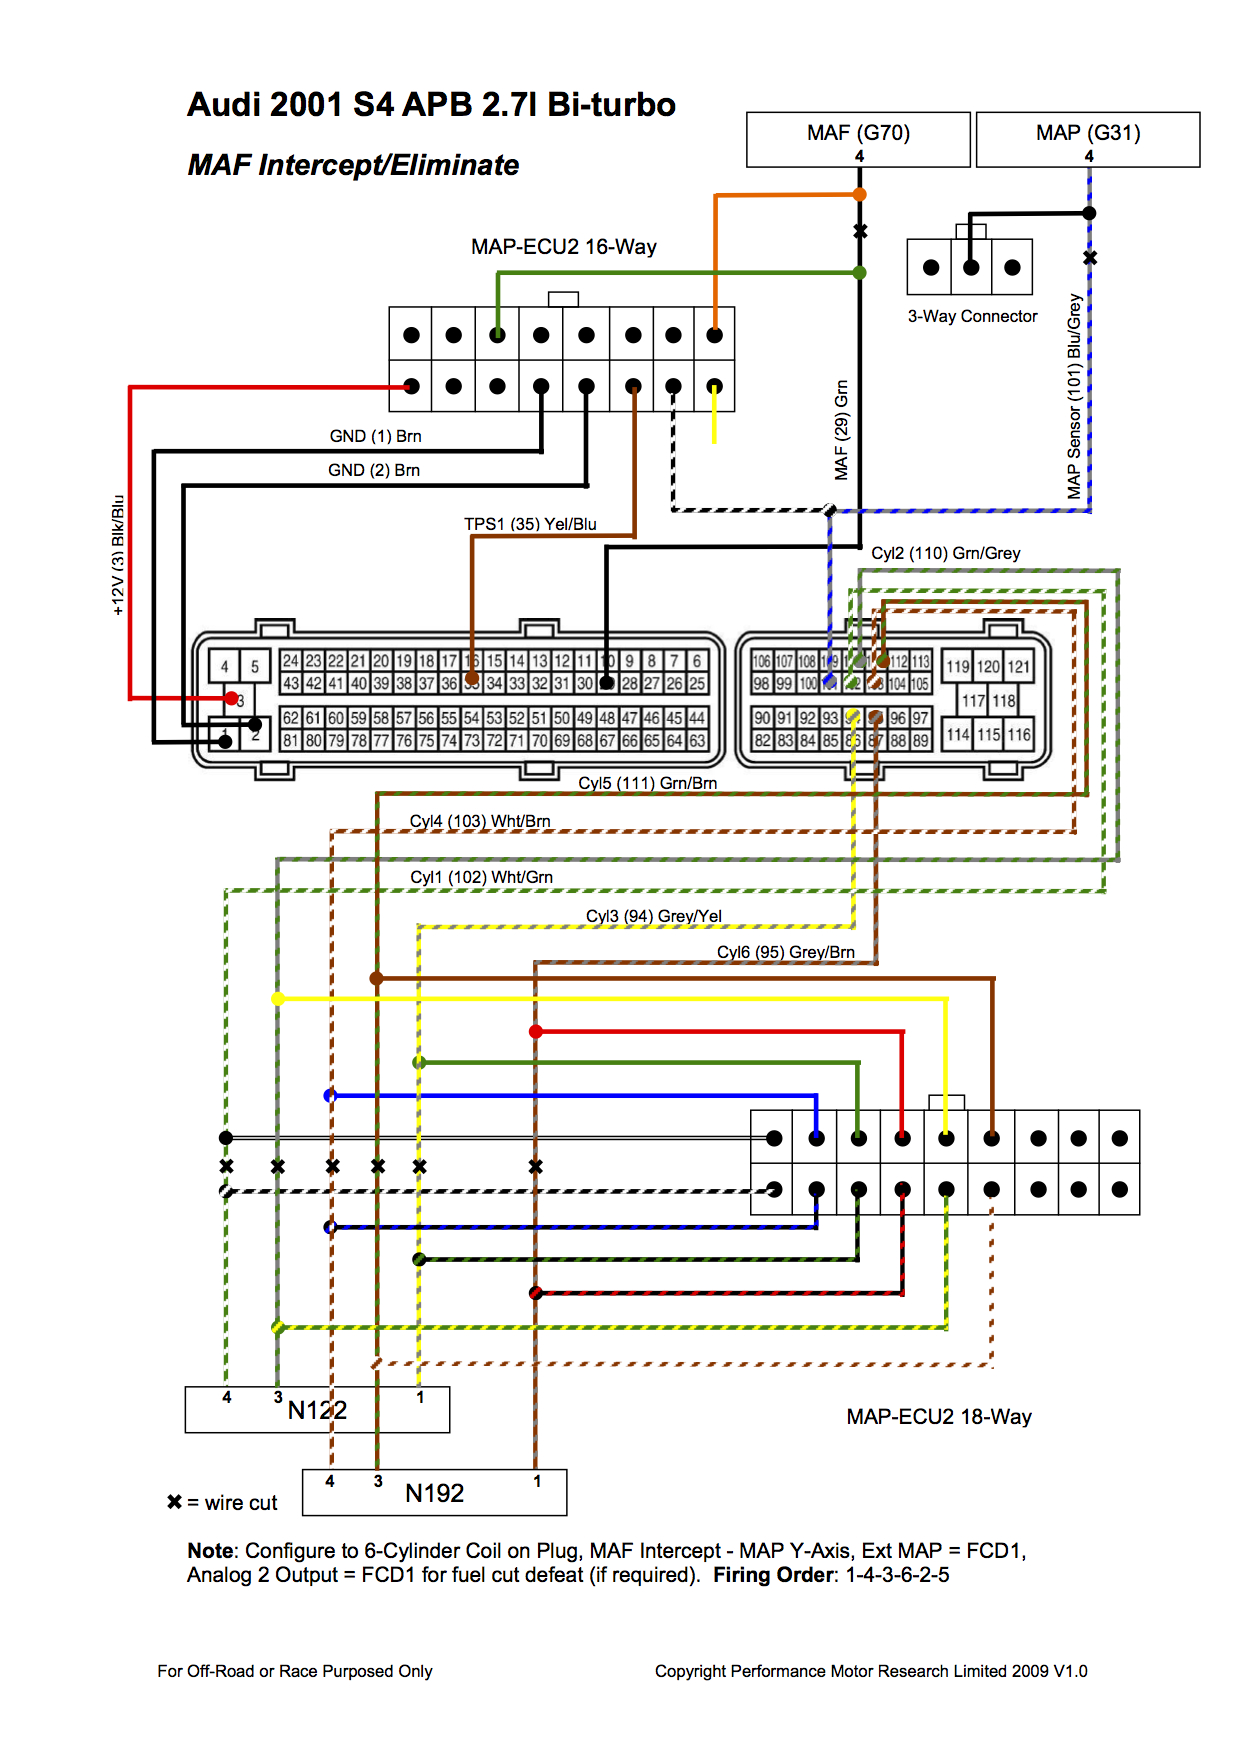 Audi S4 20011 300zx wiring diagram 300zx engine wiring diagram \u2022 wiring diagrams 2006 chrysler 300 stereo wiring diagram at n-0.co